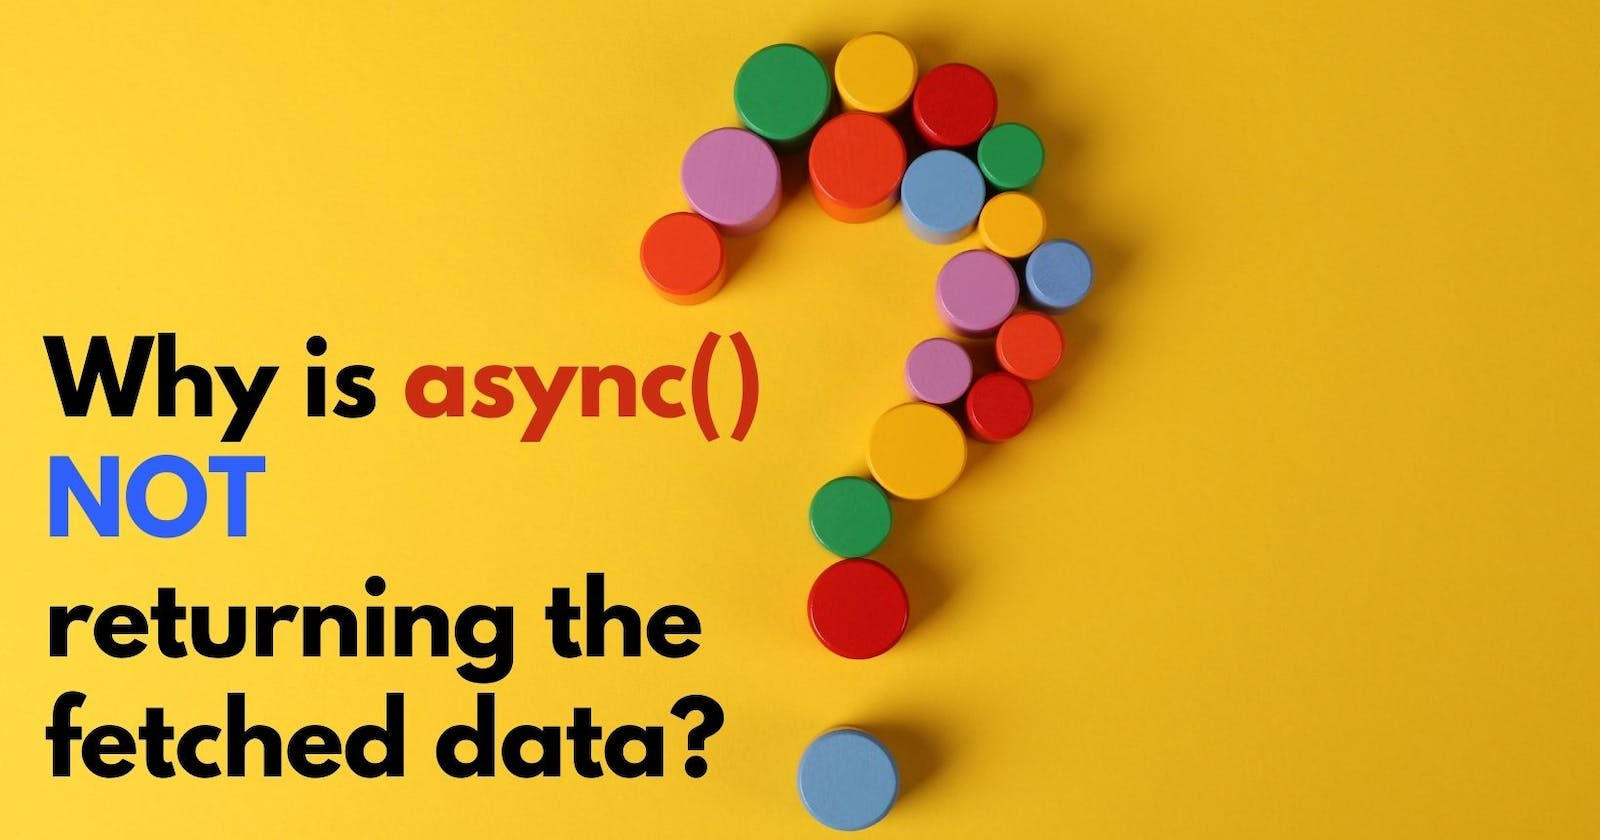 Why is async() not returning the fetched data?